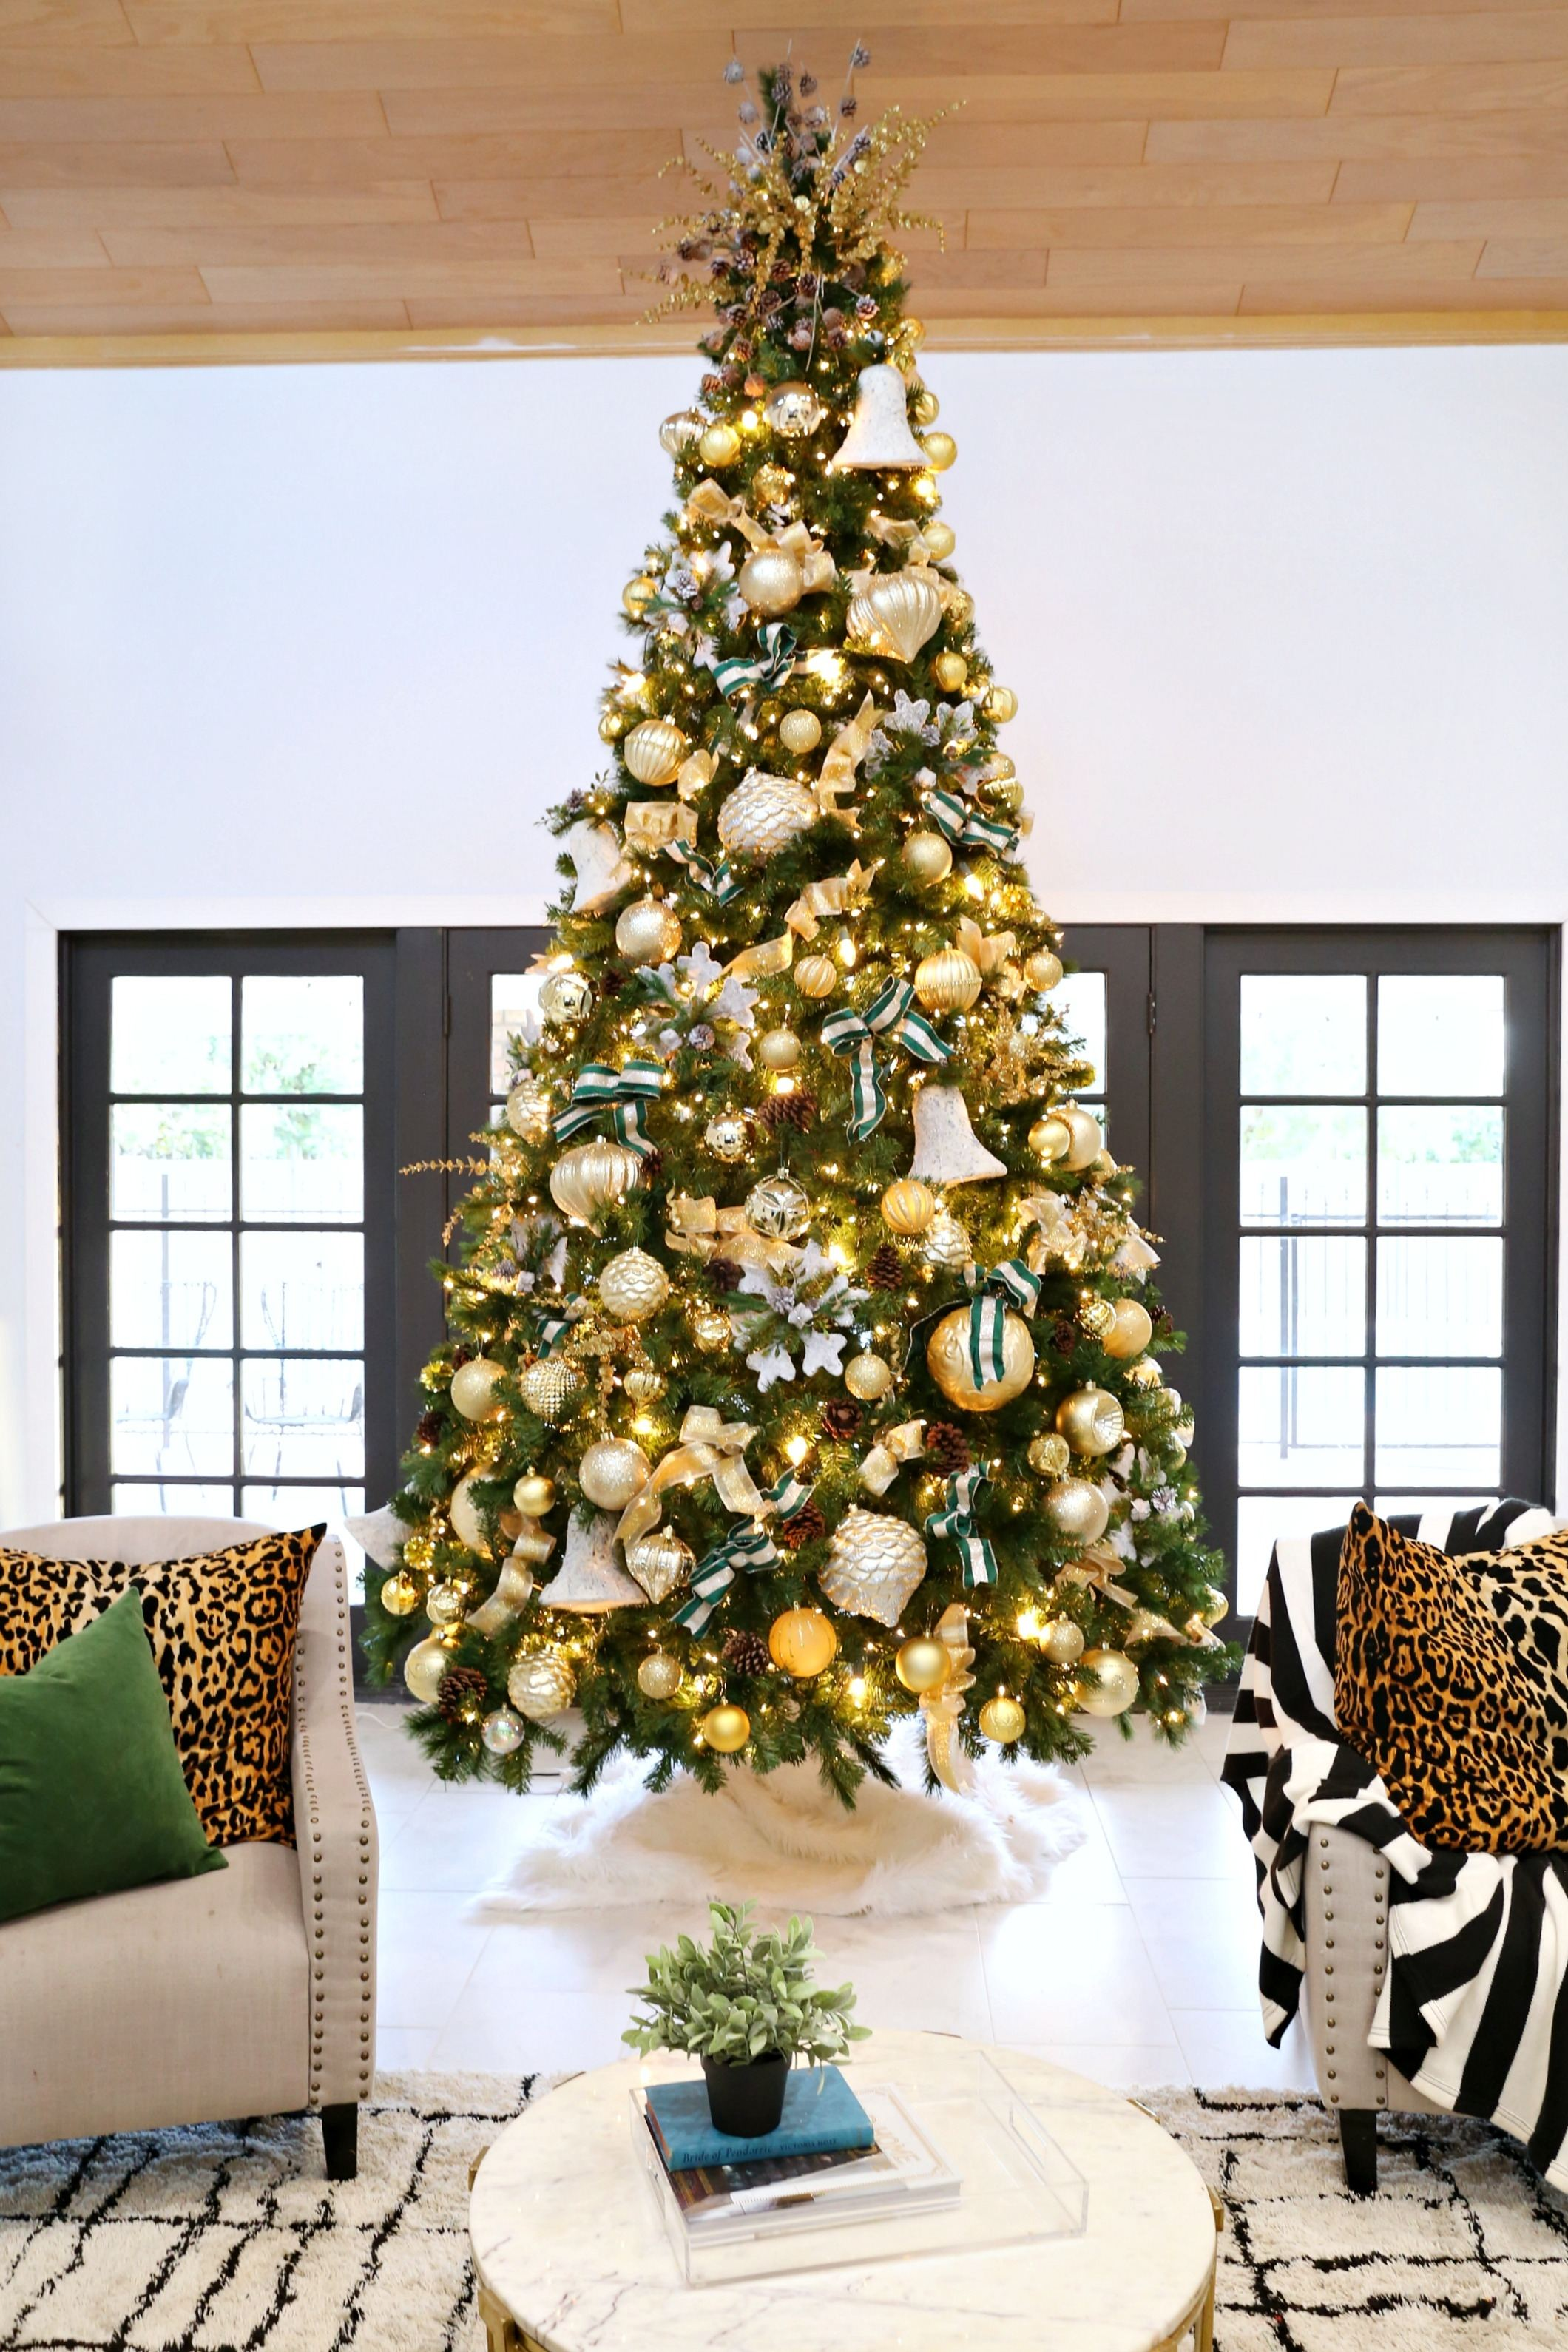 This elegant Christmas tree beautifully mixes oversize ornaments  with